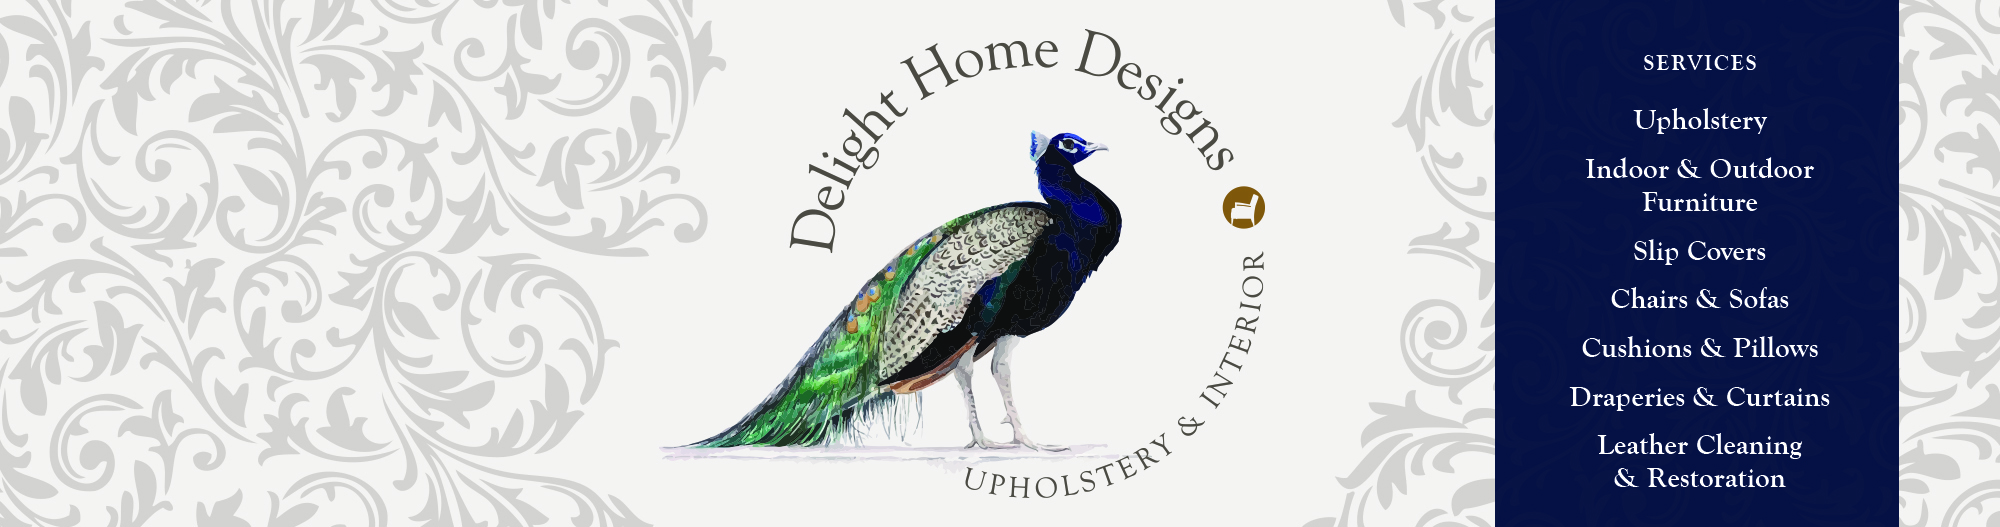 Delight Home Designs